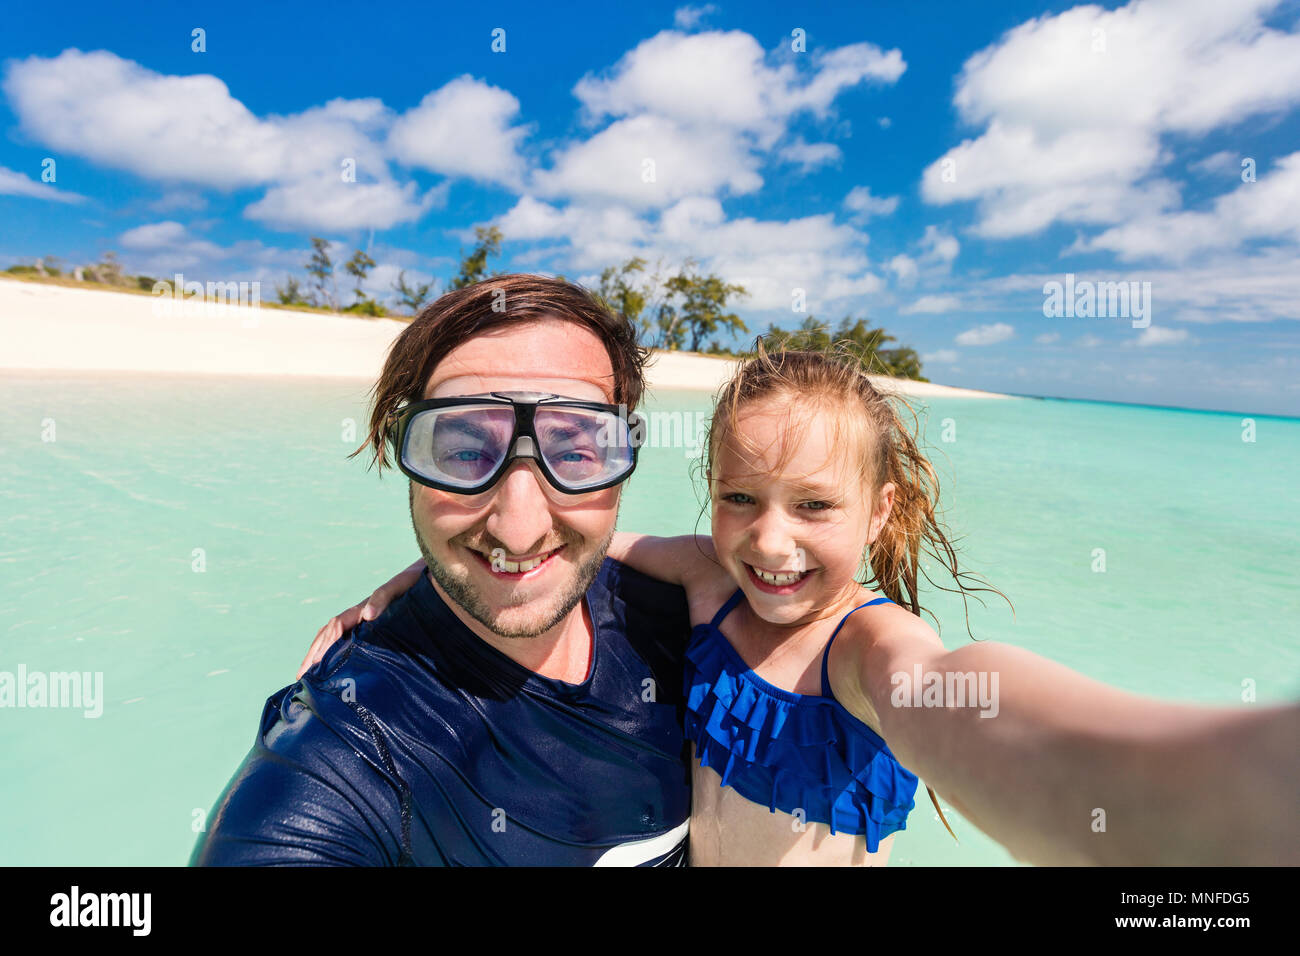 Happy family father and his adorable little daughter at beach taking selfie - Stock Image